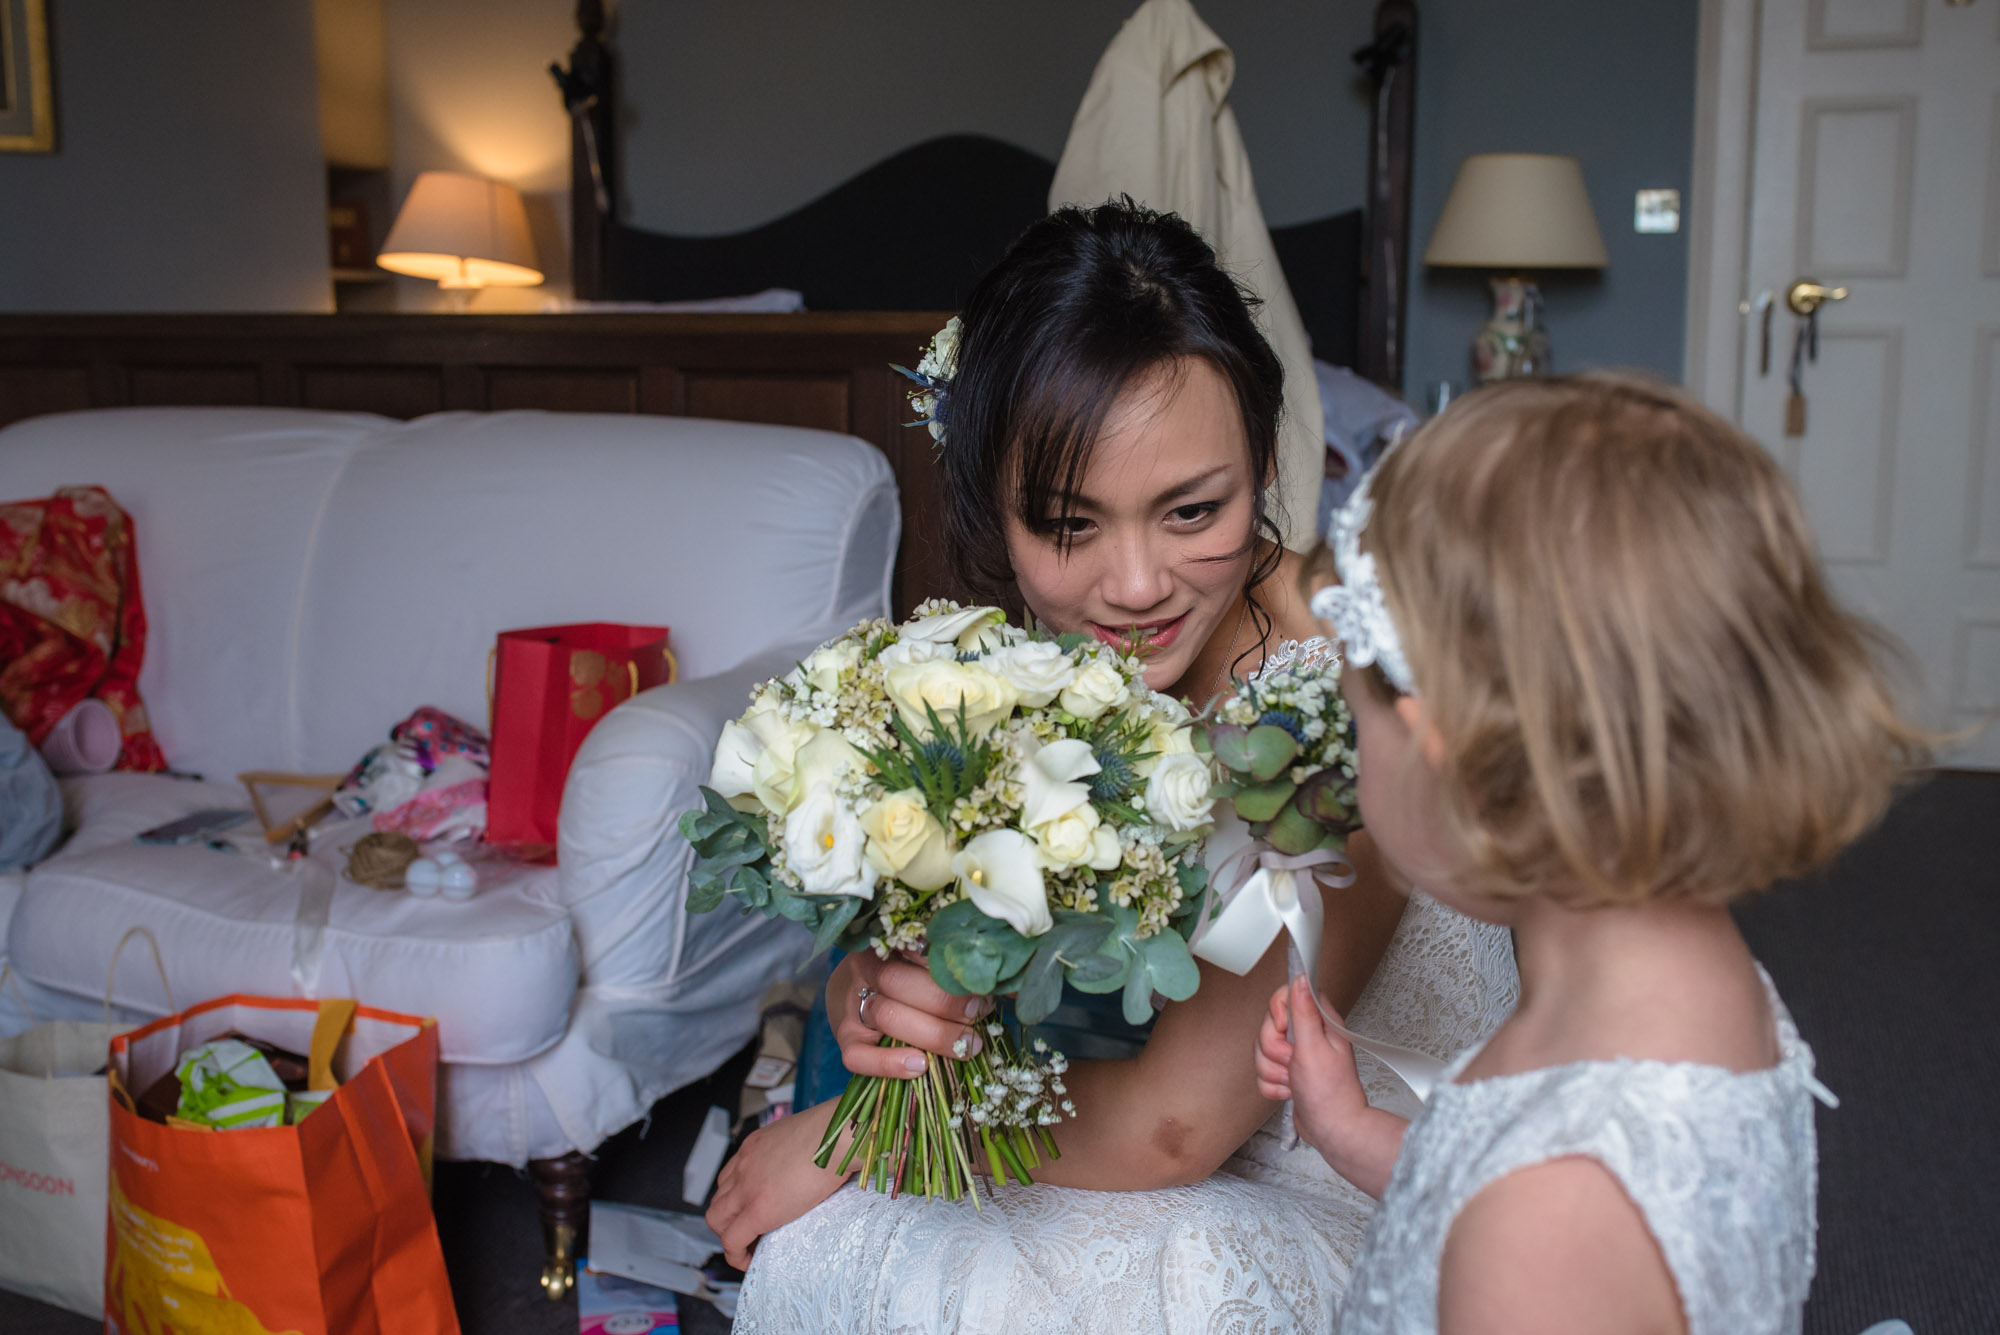 The bride kneels down to show the flower girl her bouquet.